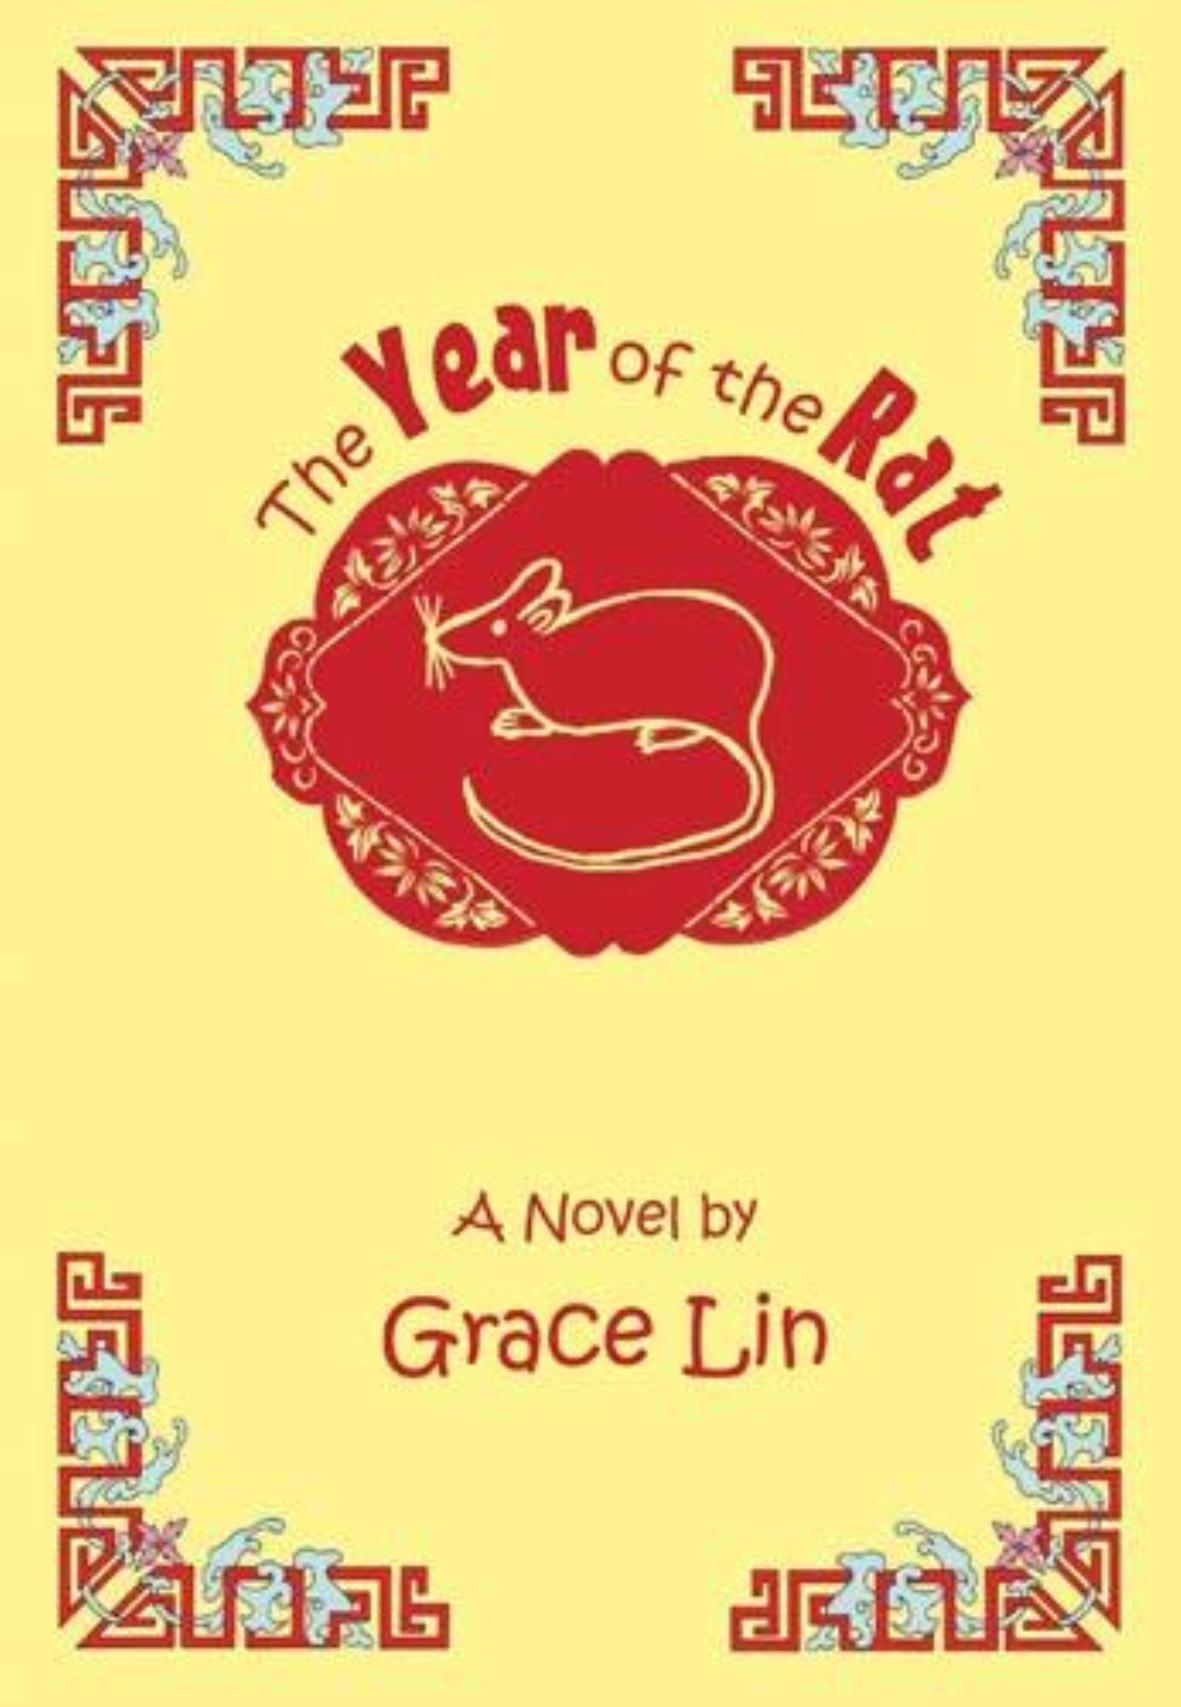 THE YEAR OF THE RAT (A PACY LIN